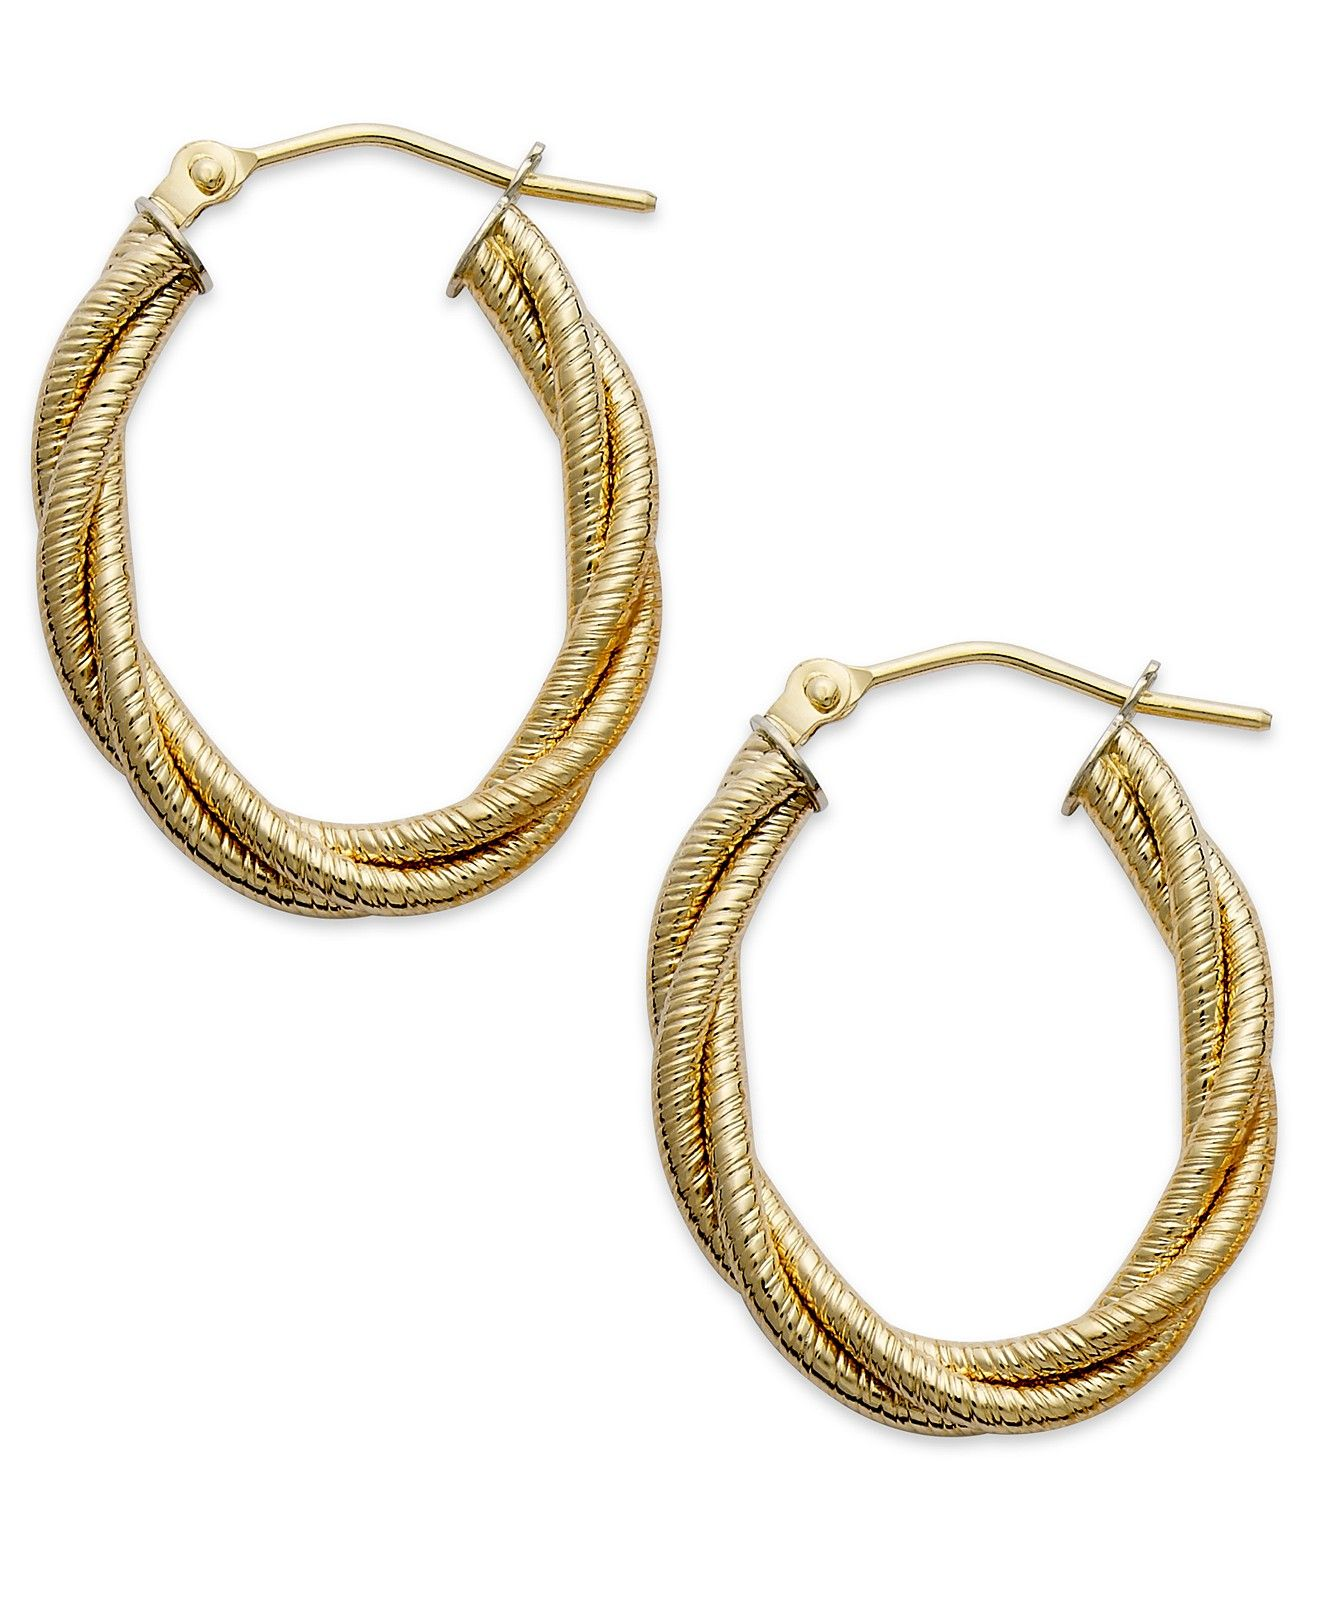 Italian Gold Textured Braided Oval Hoop Earrings in 14k Gold Gold